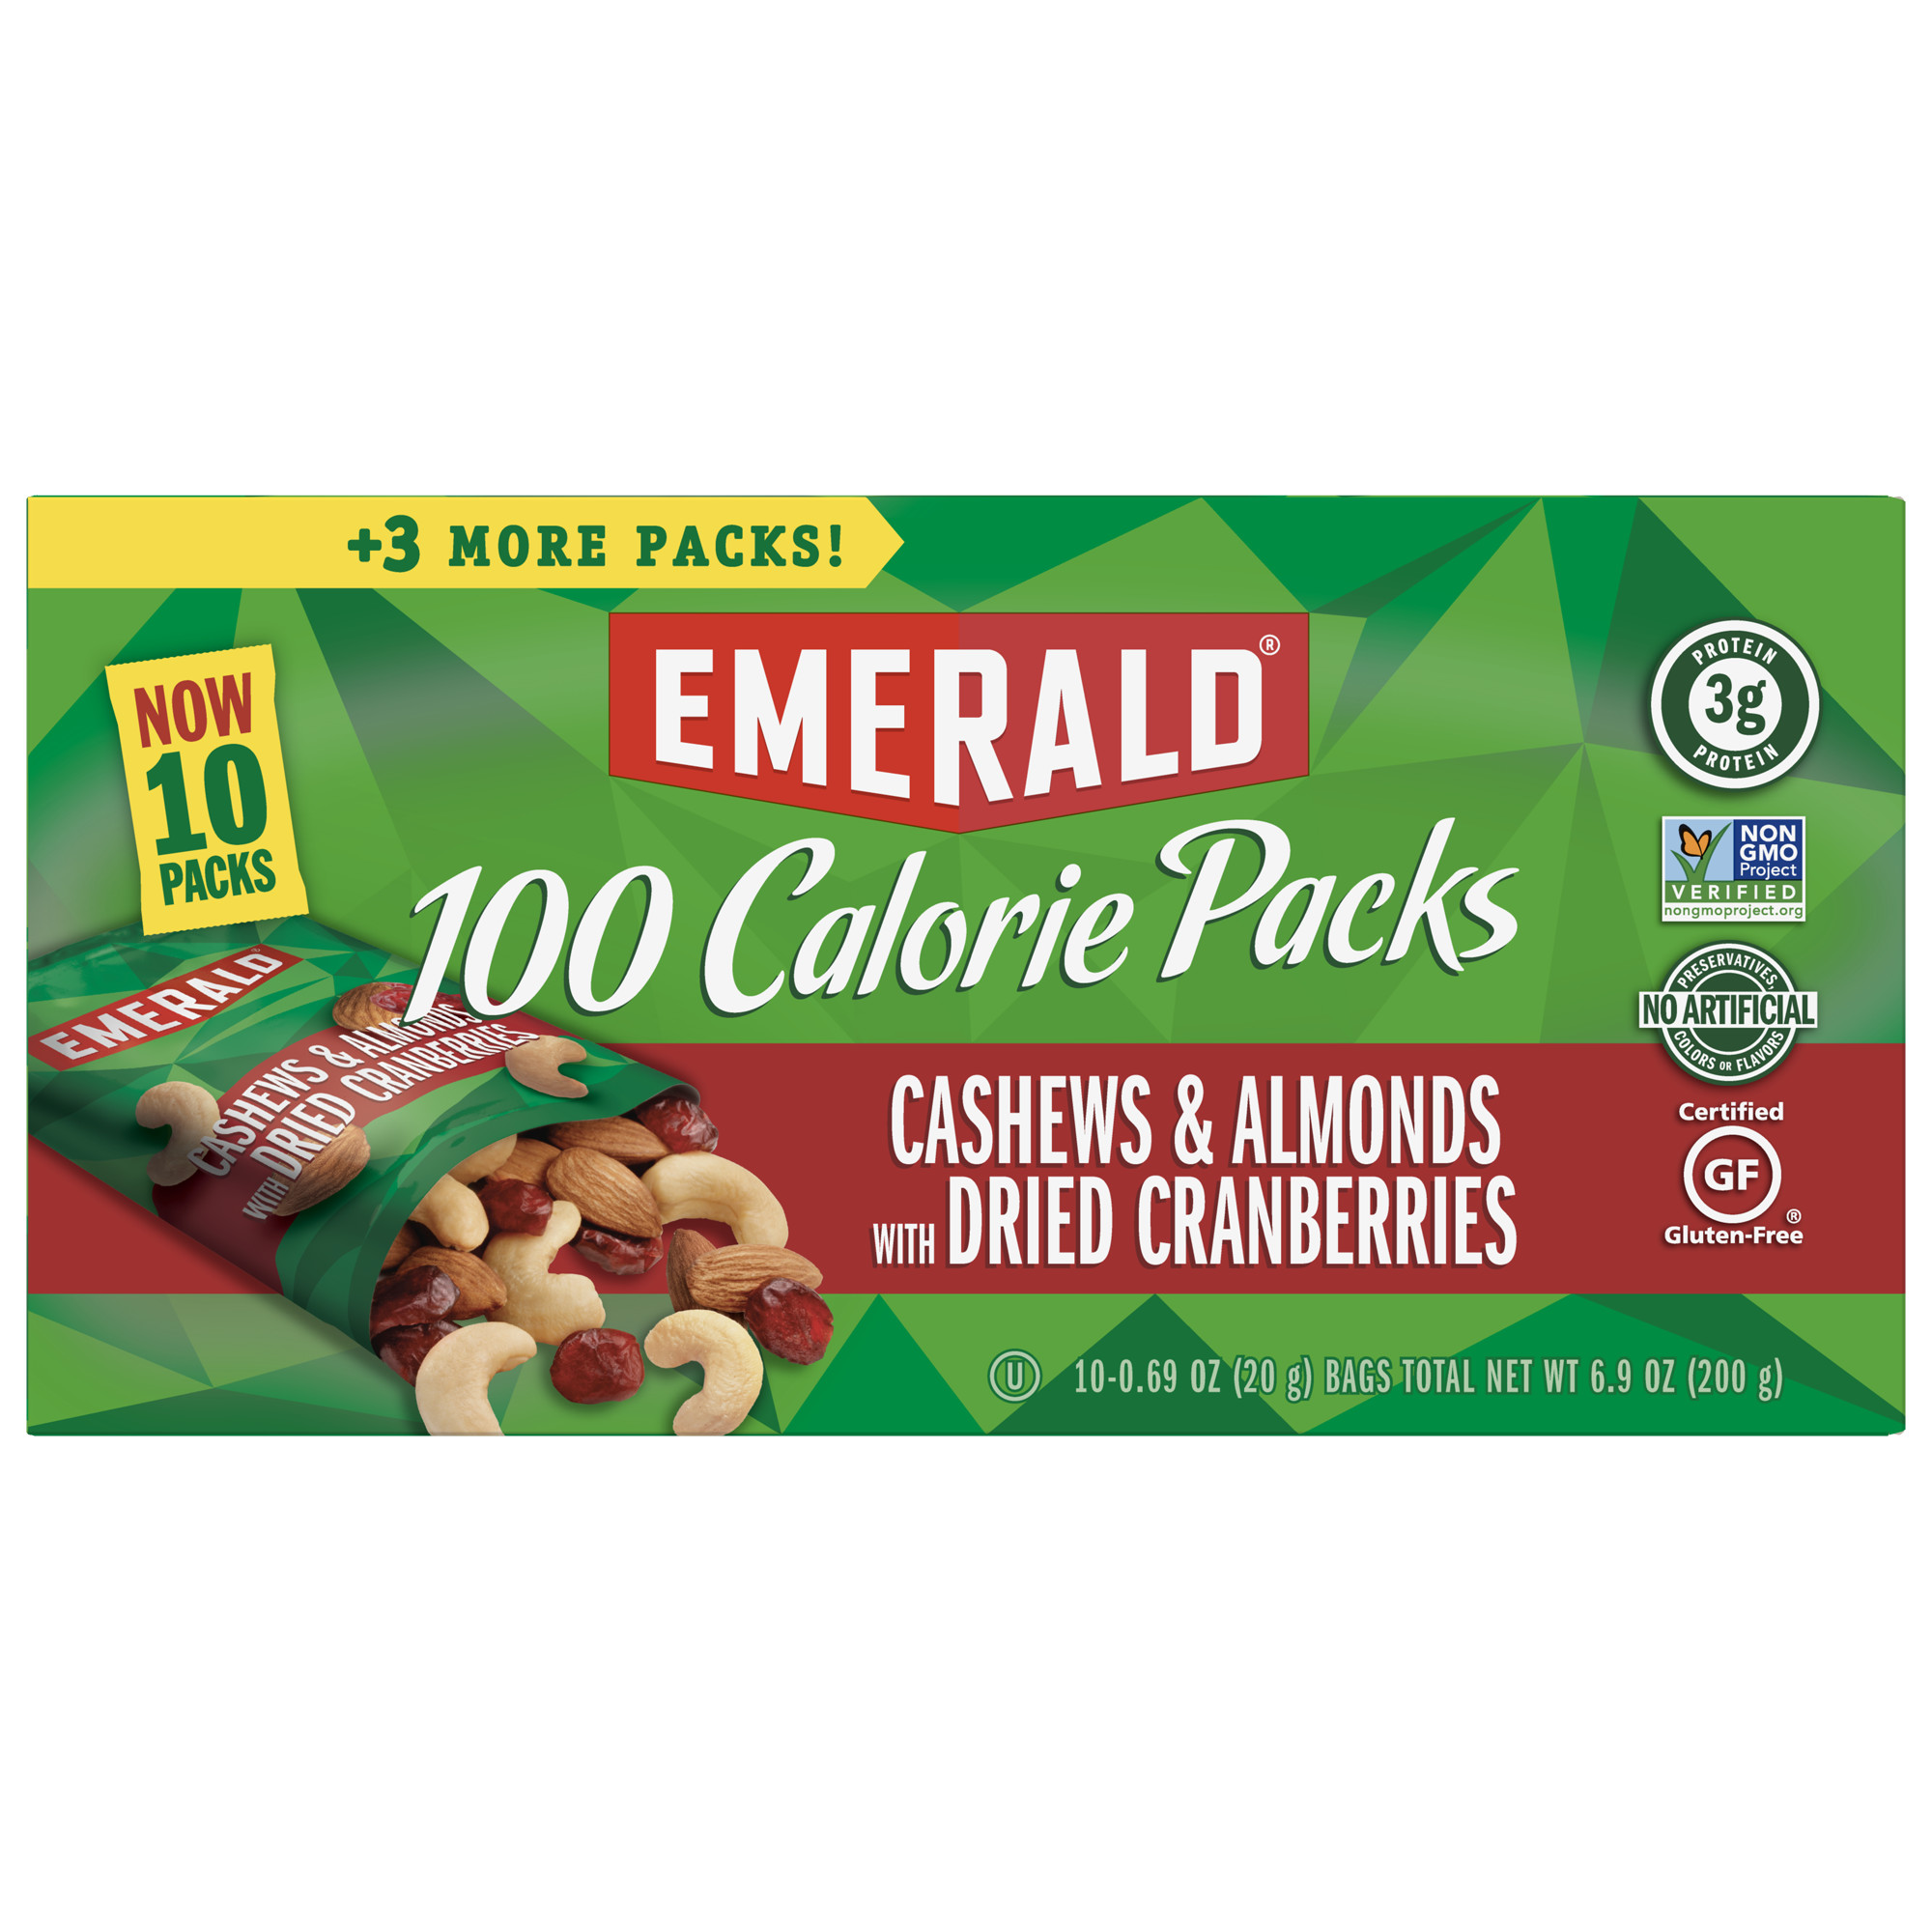 Emerald Nuts Cashews & Almonds with Dried Cranberries, 100 Calorie Packs, 10 Ct